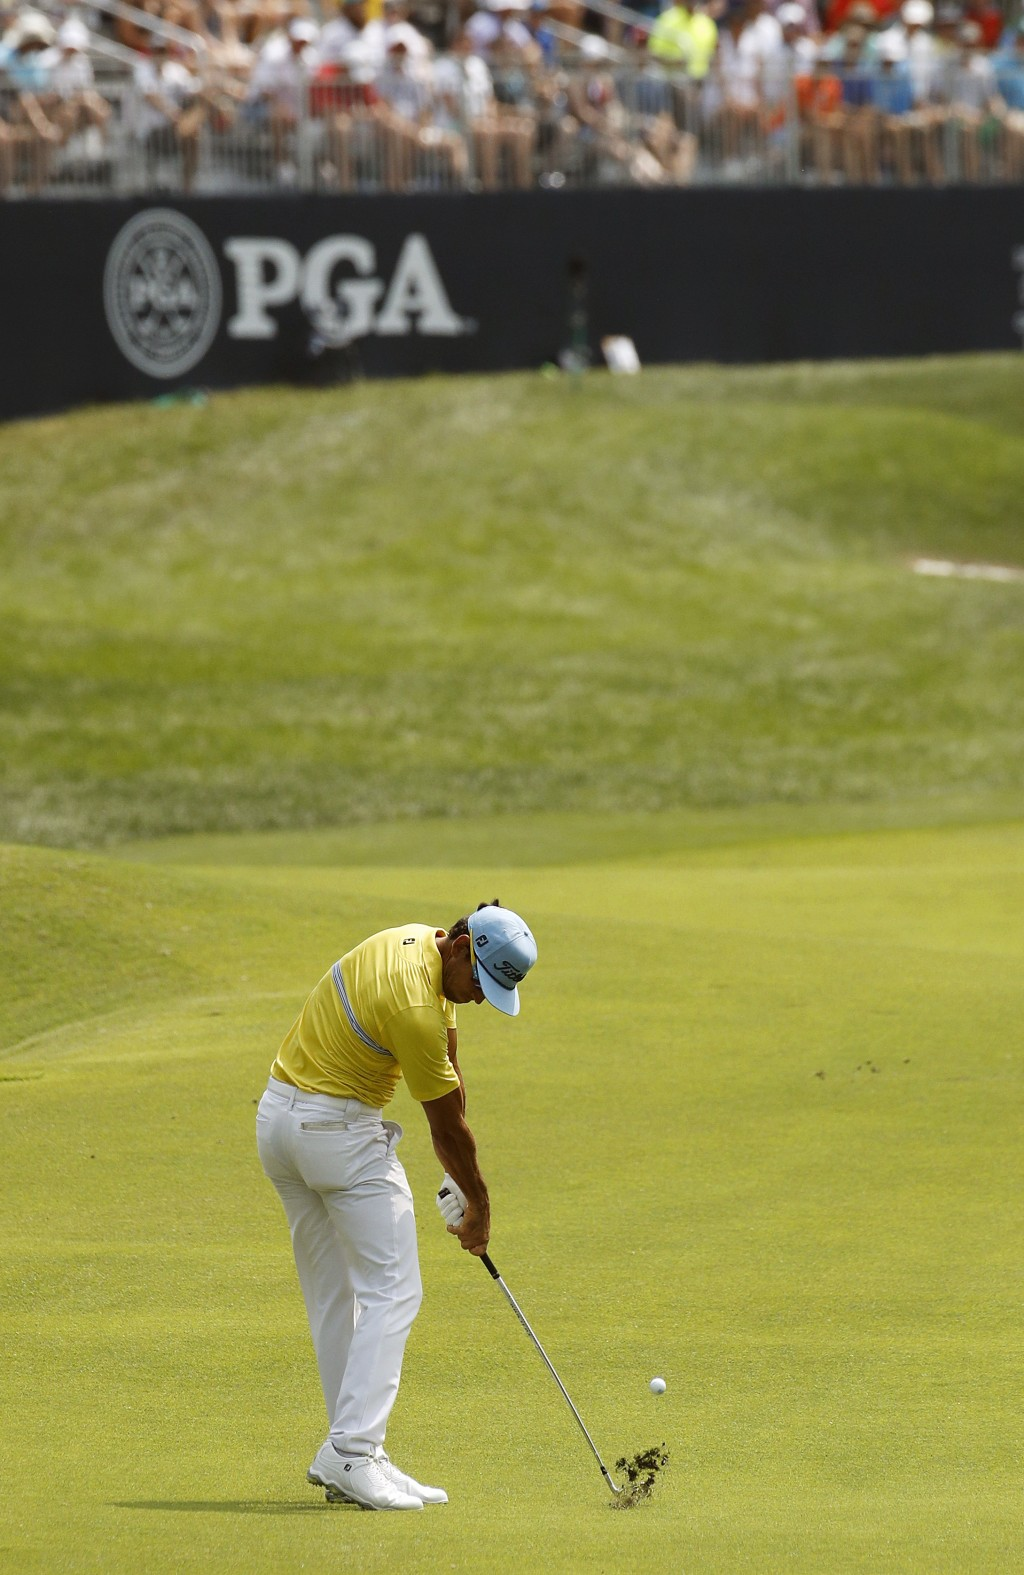 Rafa Cabrera Bello, of Spain, hits to the 17th green during the final round of the PGA Championship golf tournament at Bellerive Country Club, Sunday,